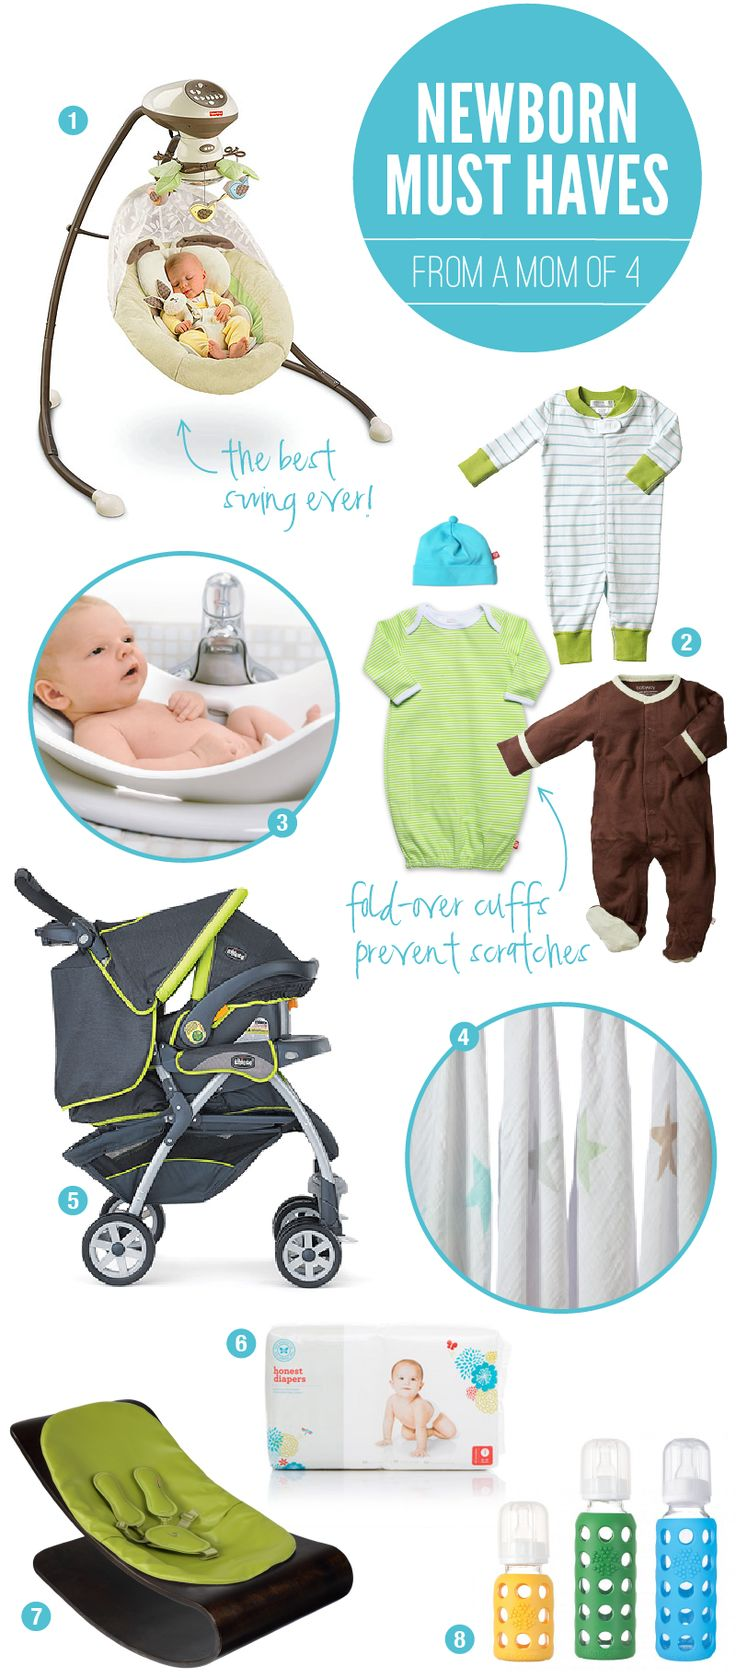 Baby week giveaway 10 angelcare infant bath support andrea dekker - It S A Virtual Baby Shower